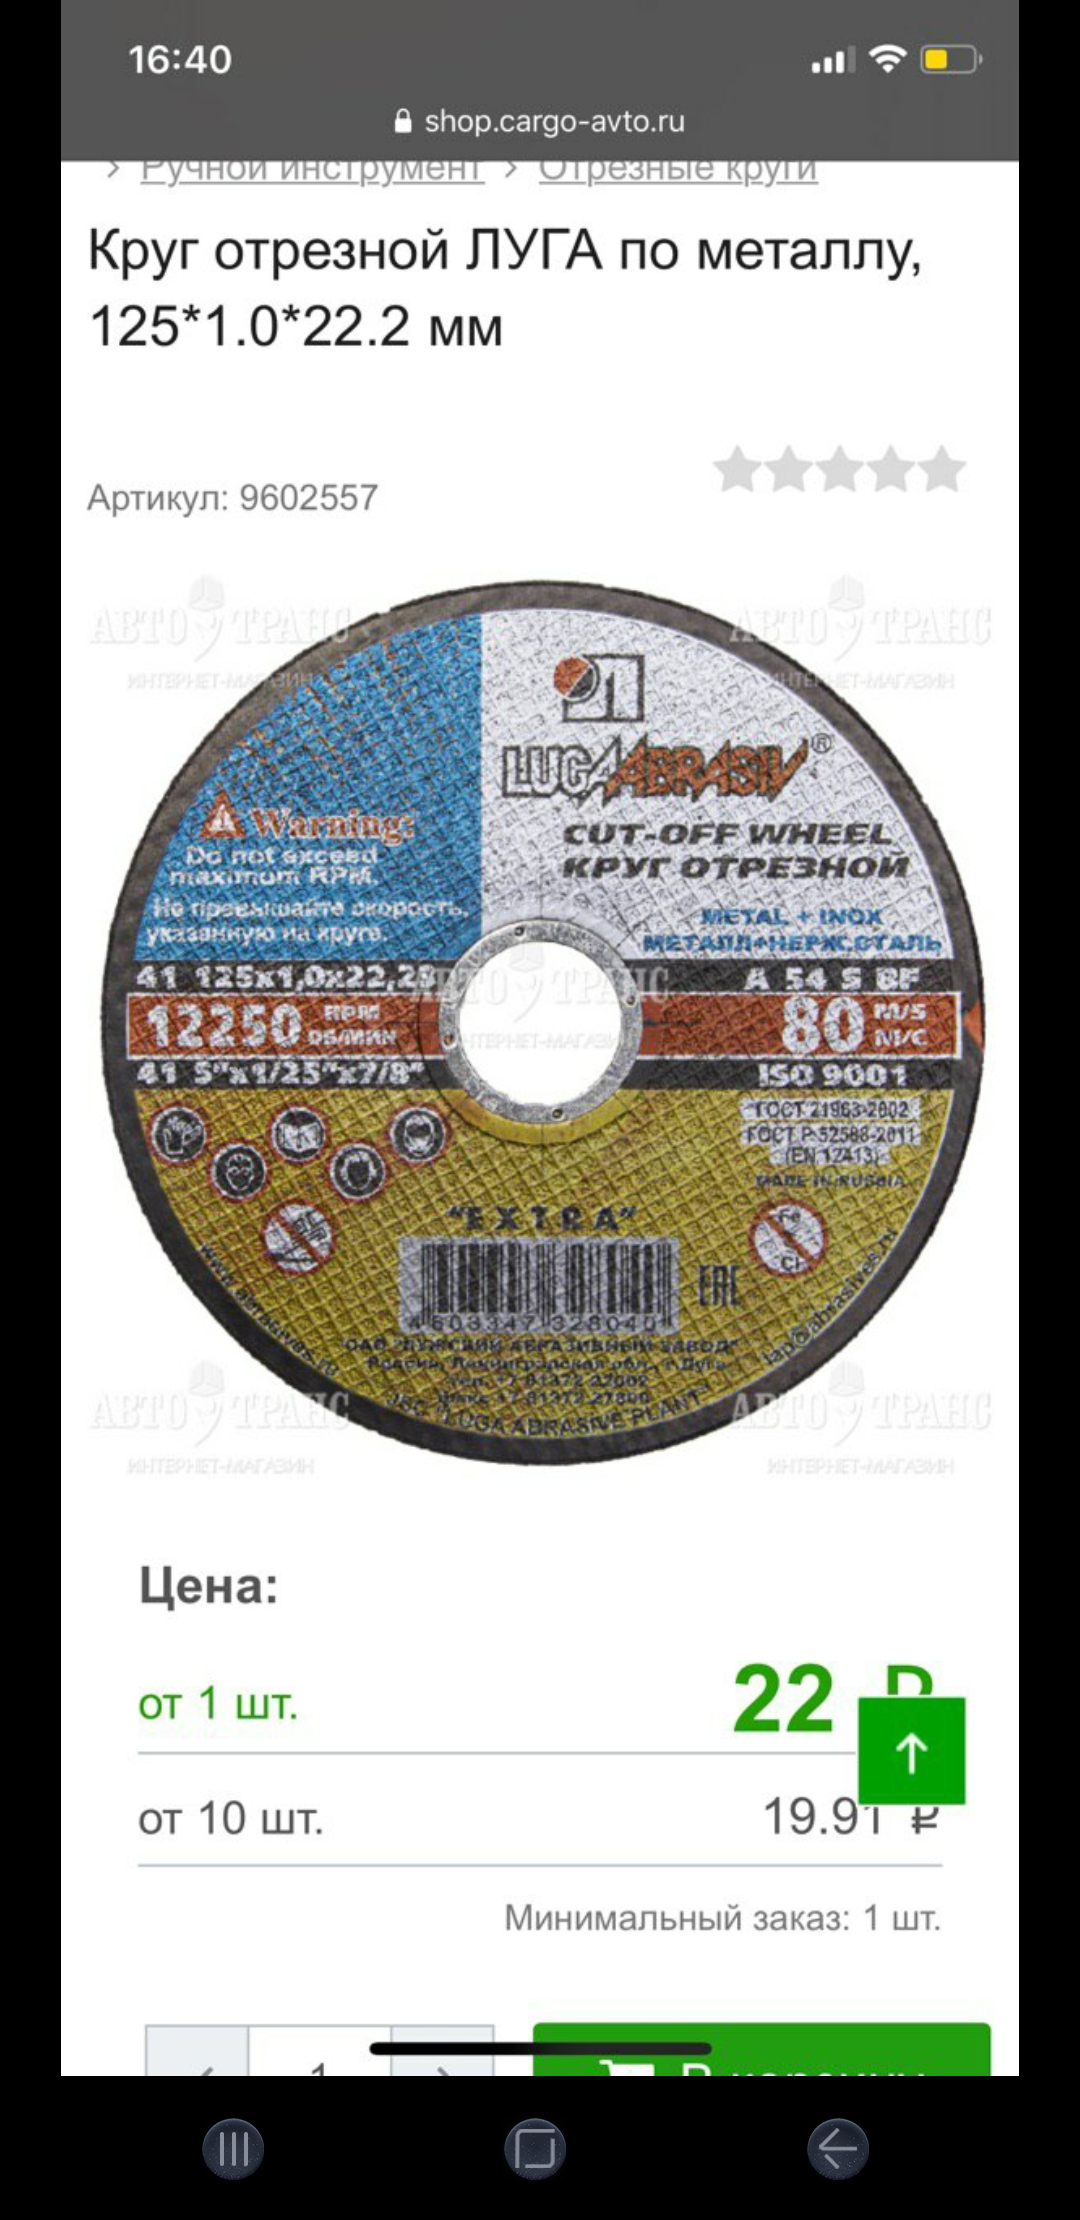 <p>Cutting wheel required&nbsp;<br />